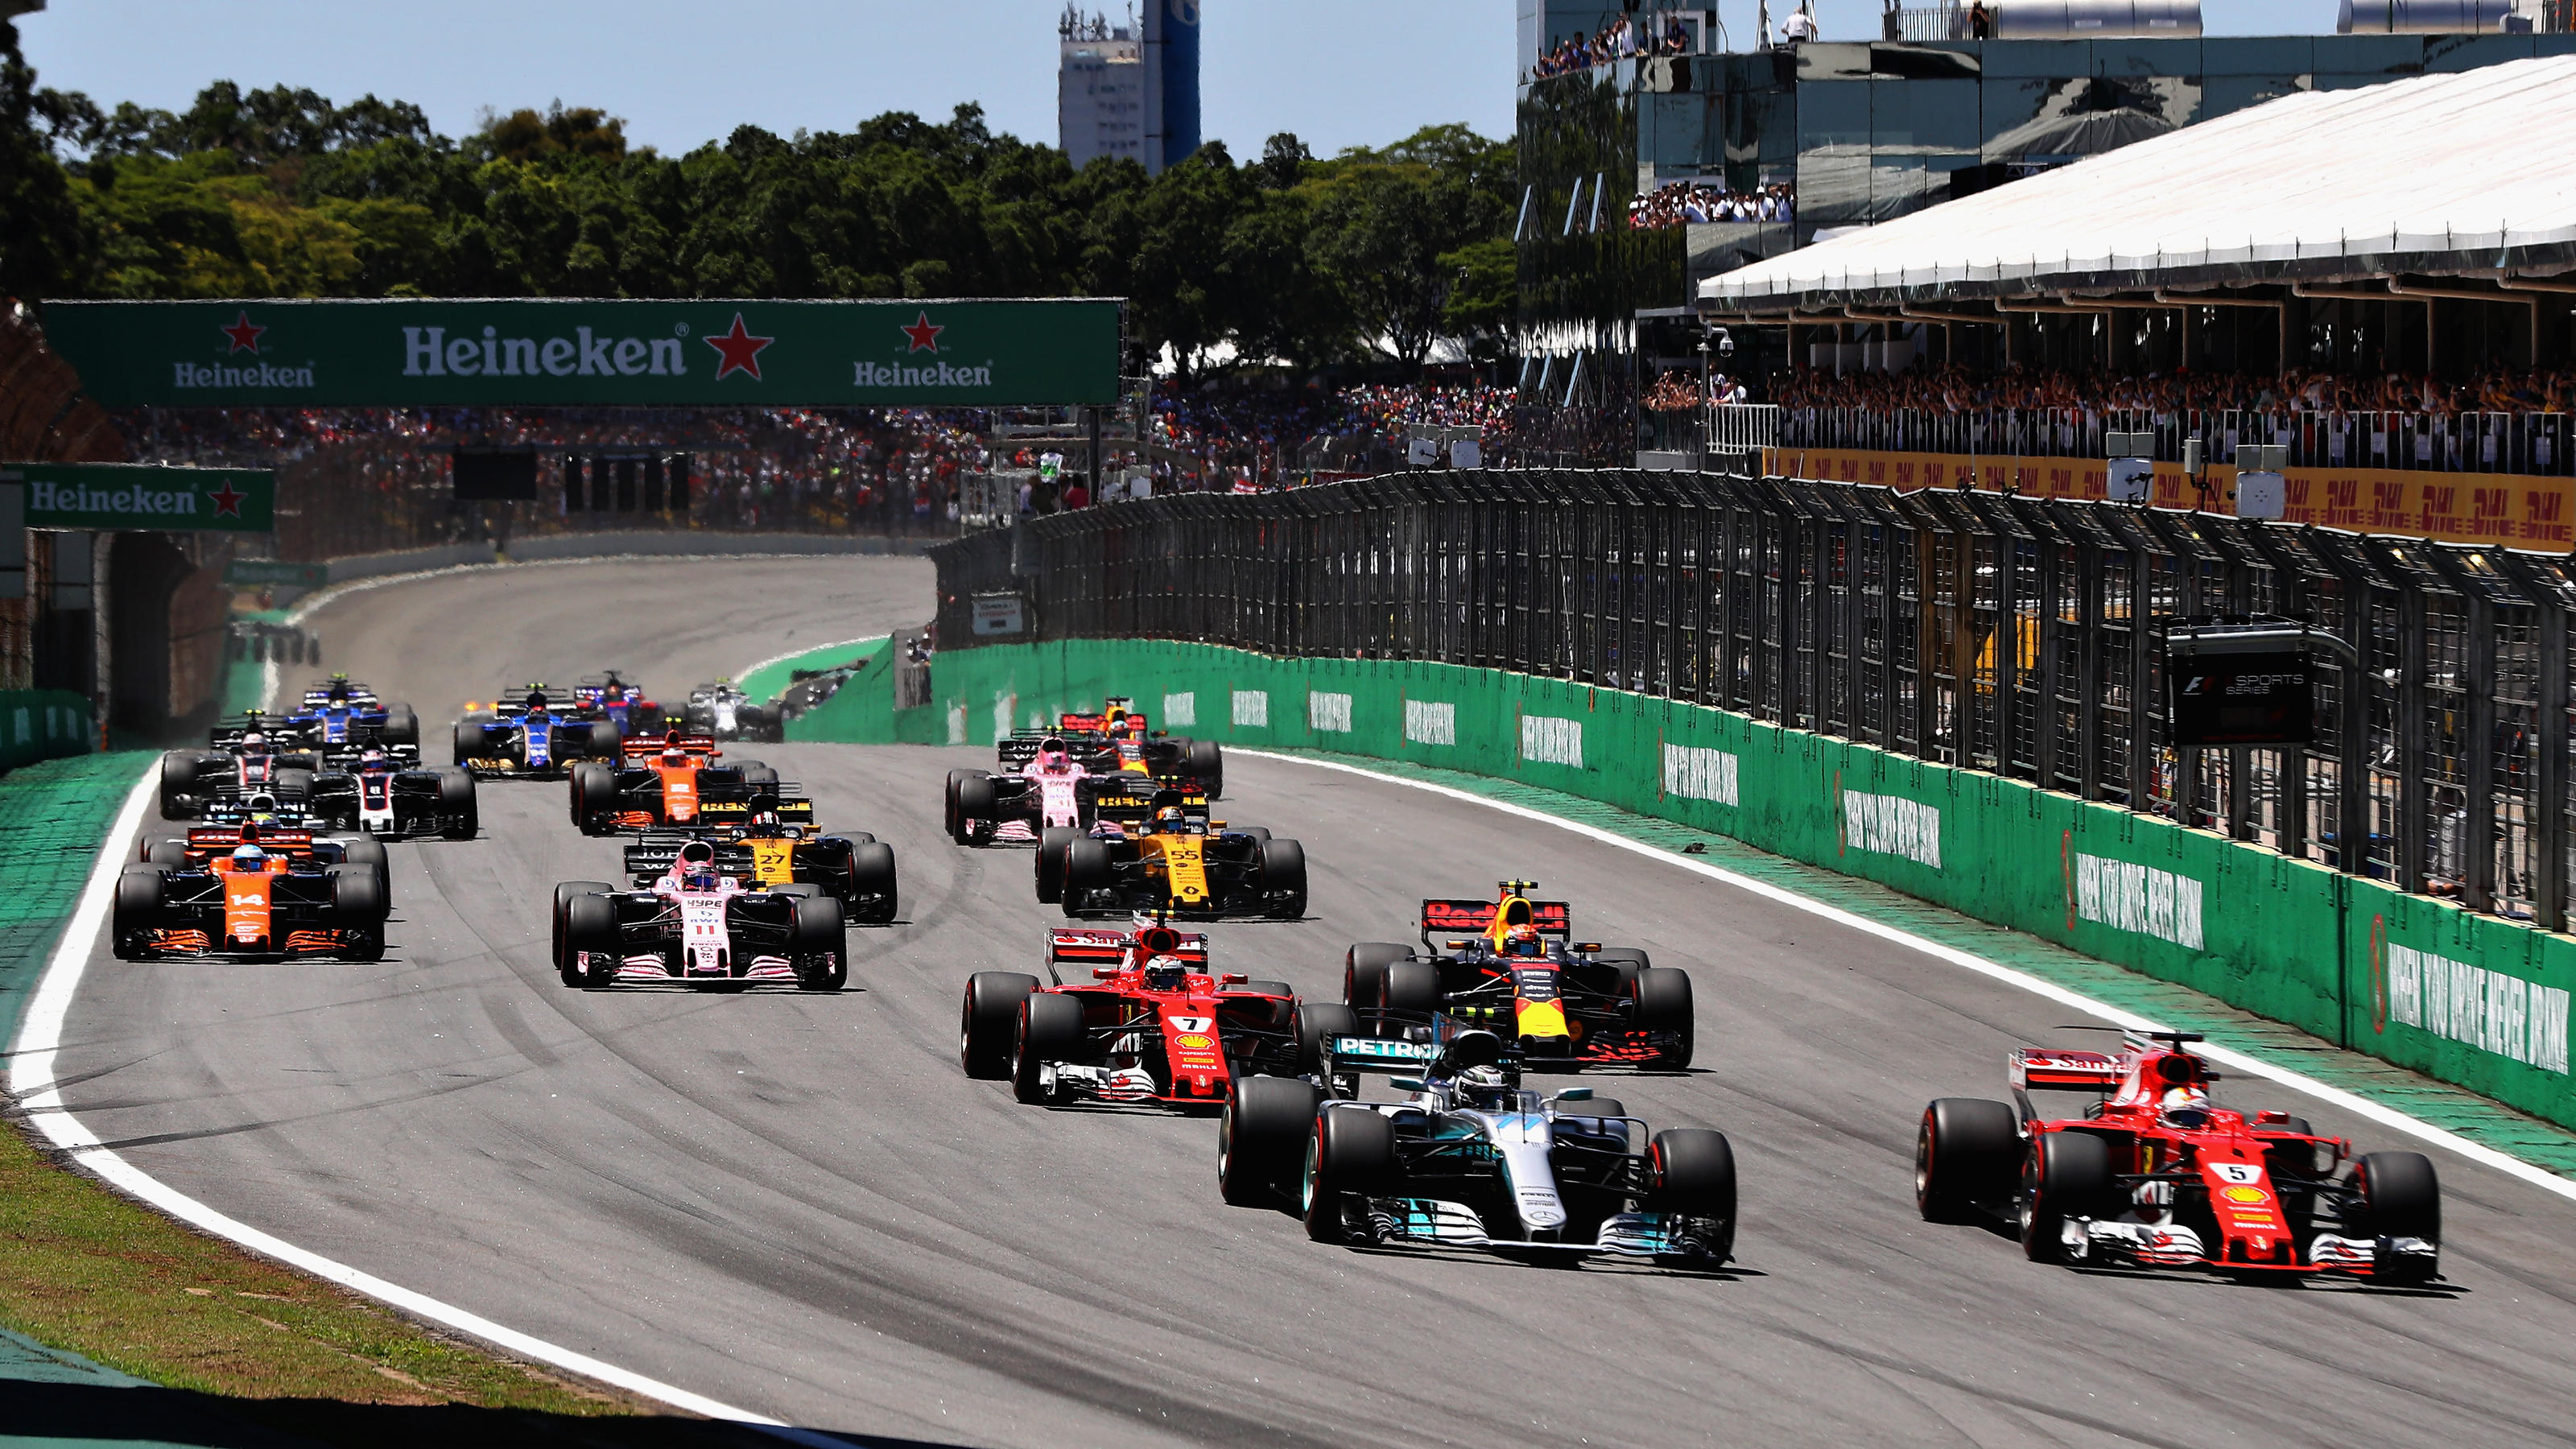 SAO PAULO, BRAZIL - NOVEMBER 12: Sebastian Vettel of Germany driving the (5) Scuderia Ferrari SF70H and Valtteri Bottas driving the (77) Mercedes AMG Petronas F1 Team Mercedes F1 WO8 lead the field towards turn one at the start during the Formula One